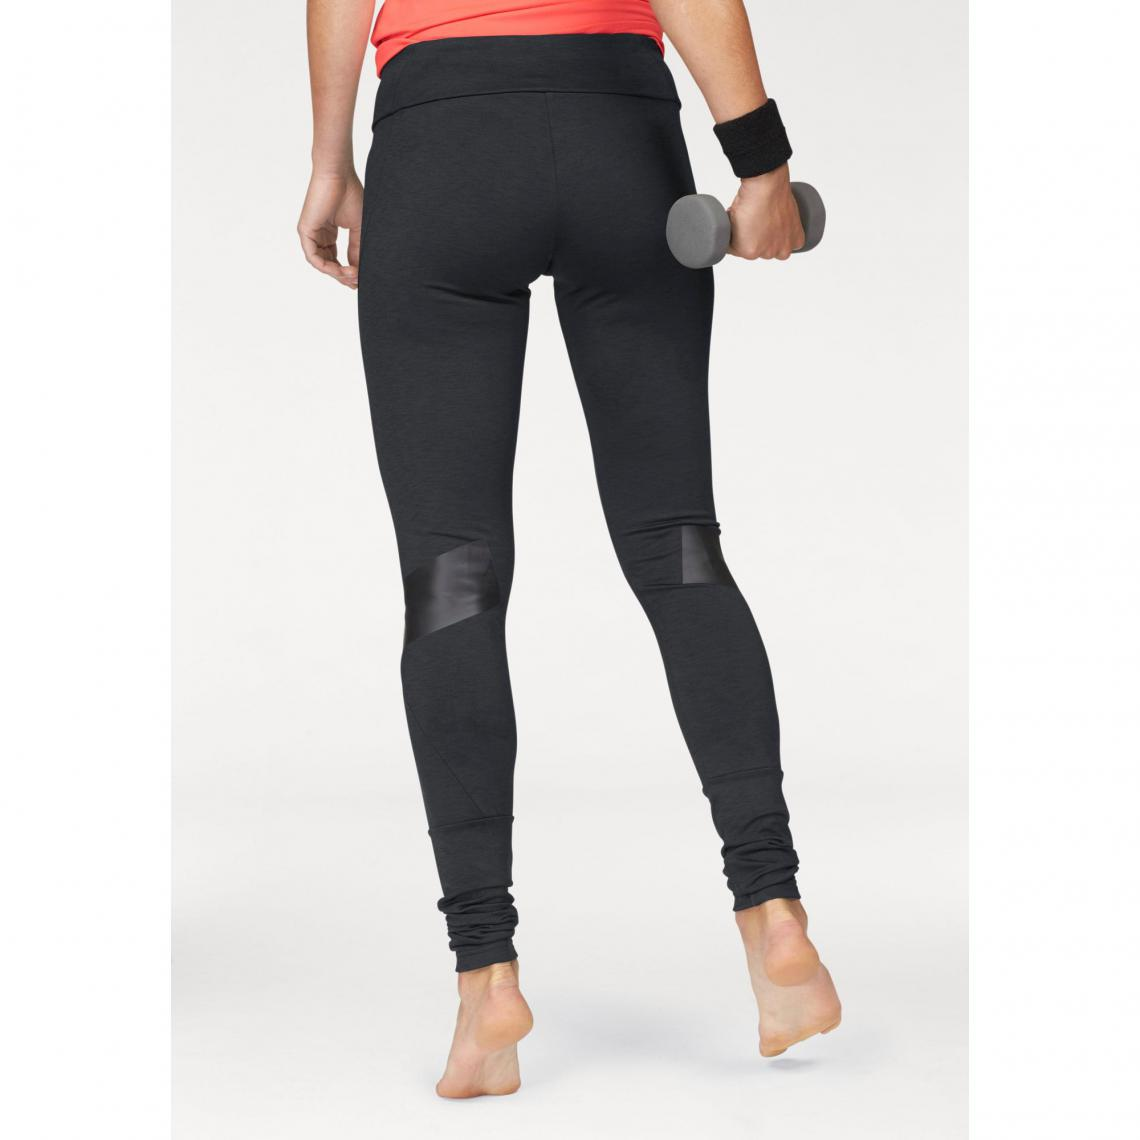 919311040bc3c Legging adidas Performance Warmer Tight femme - Noir   3Suisses